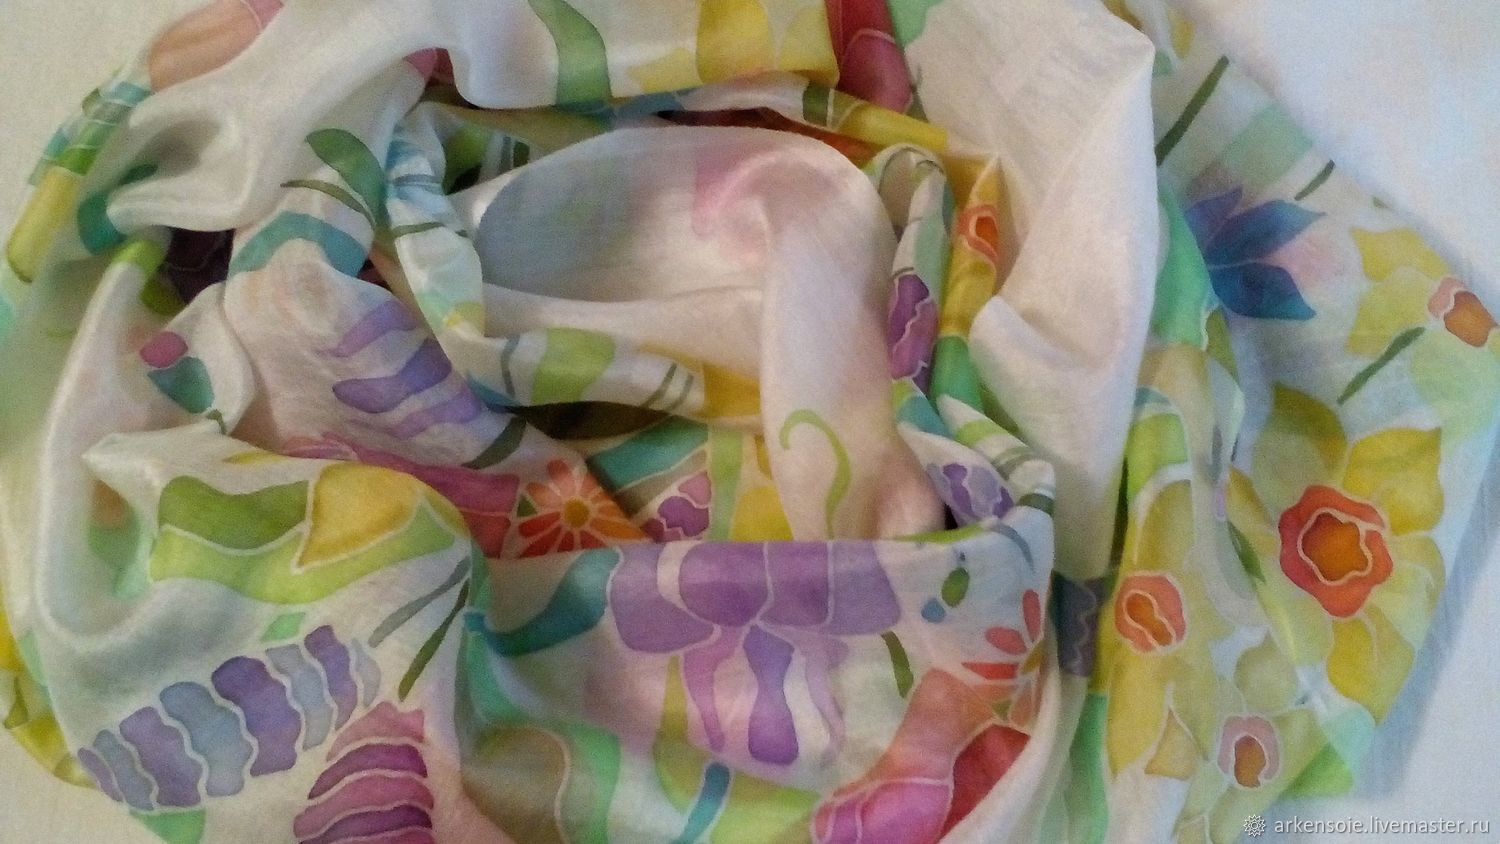 The breath of Summer,a silk scarf handmade,cold batik